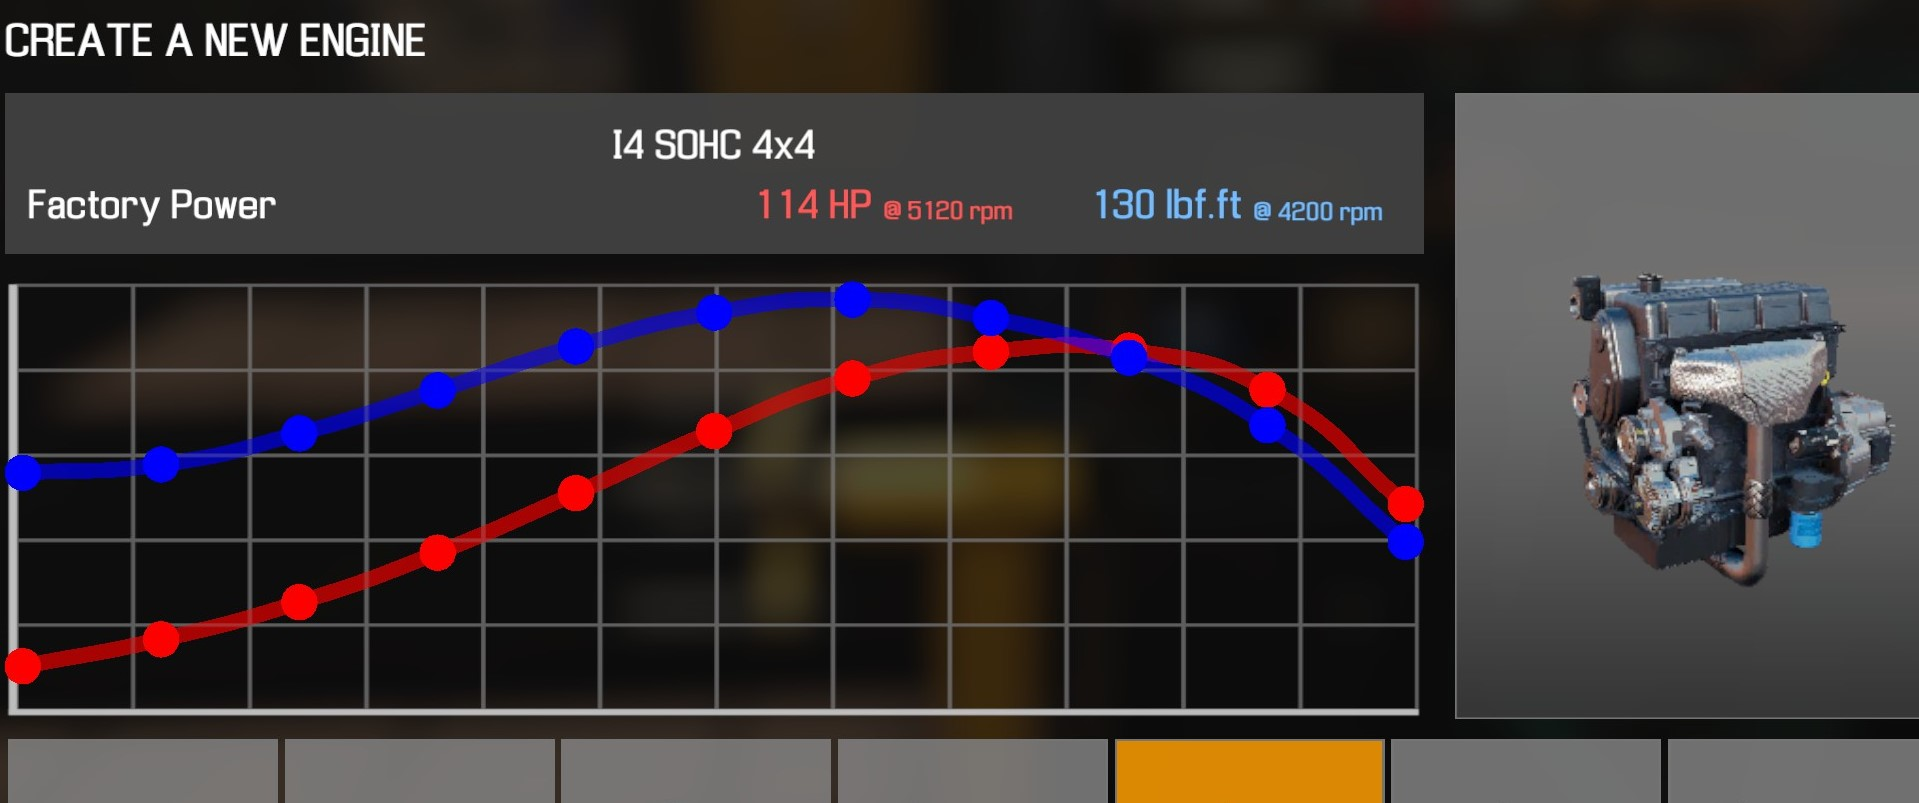 Car Mechanic Simulator 2021 - How to Buy Engine Parts and All Engines in Game Information - I4 SOHC 4x4 - C41A4D8